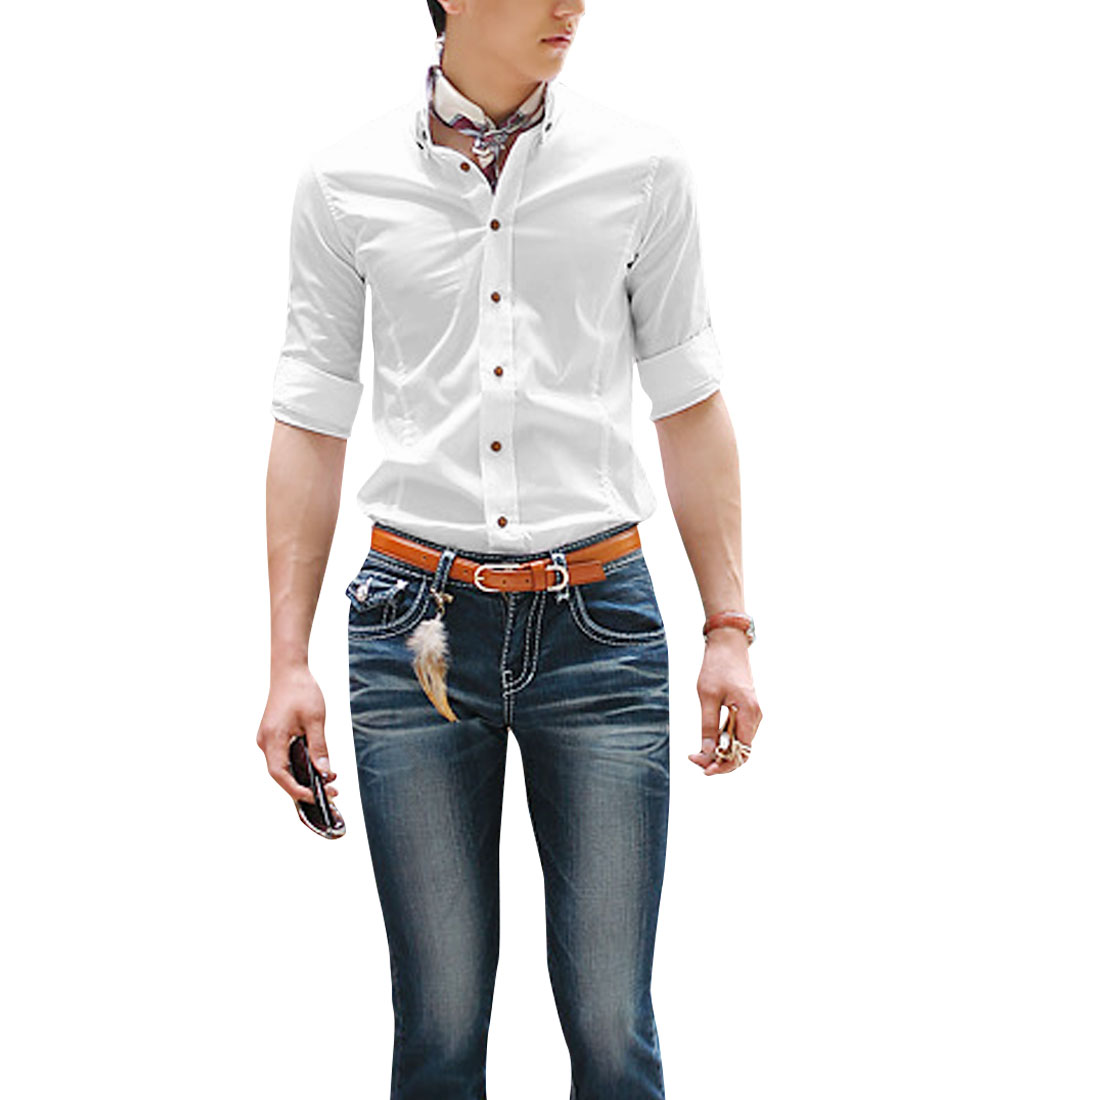 Men Half Sleeve Single Breasted Close-fitting White Shirt M